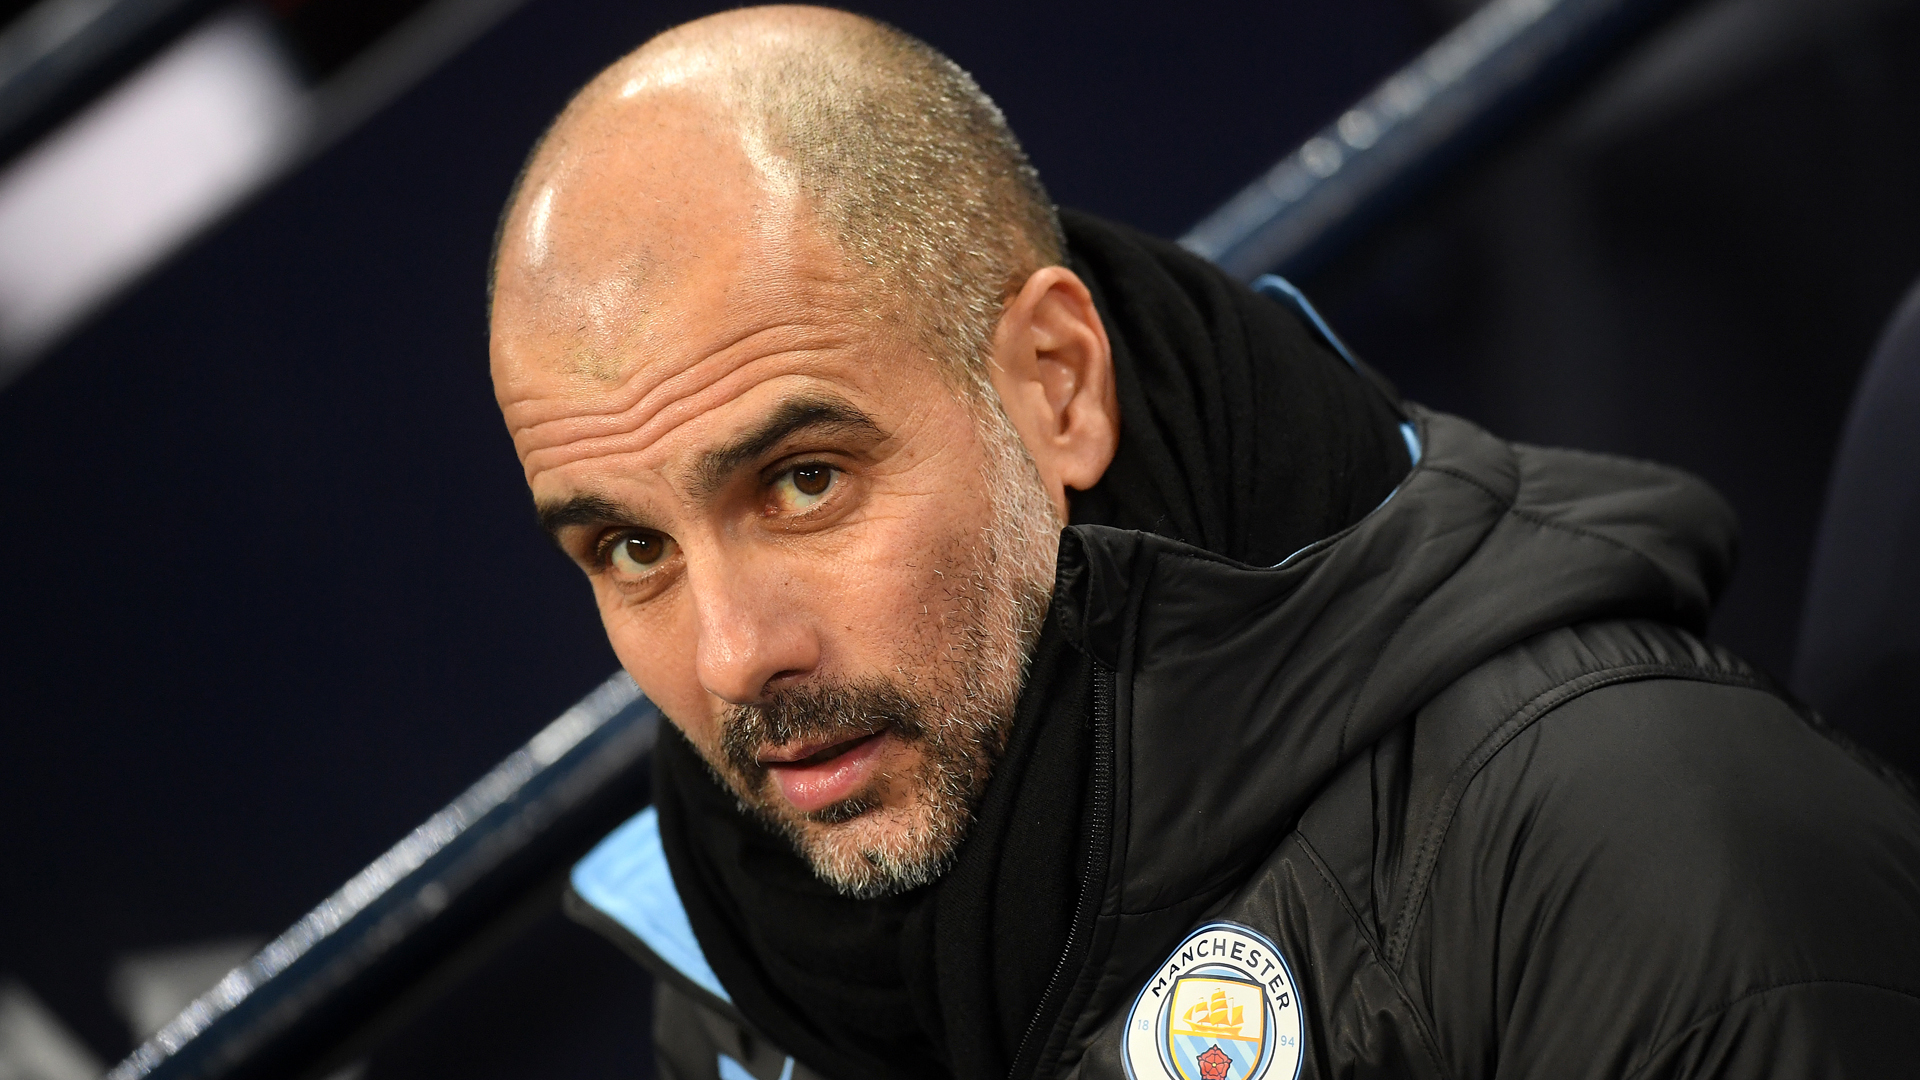 Guardiola focused on improving Man City rather than 'extraordinary' Liverpool